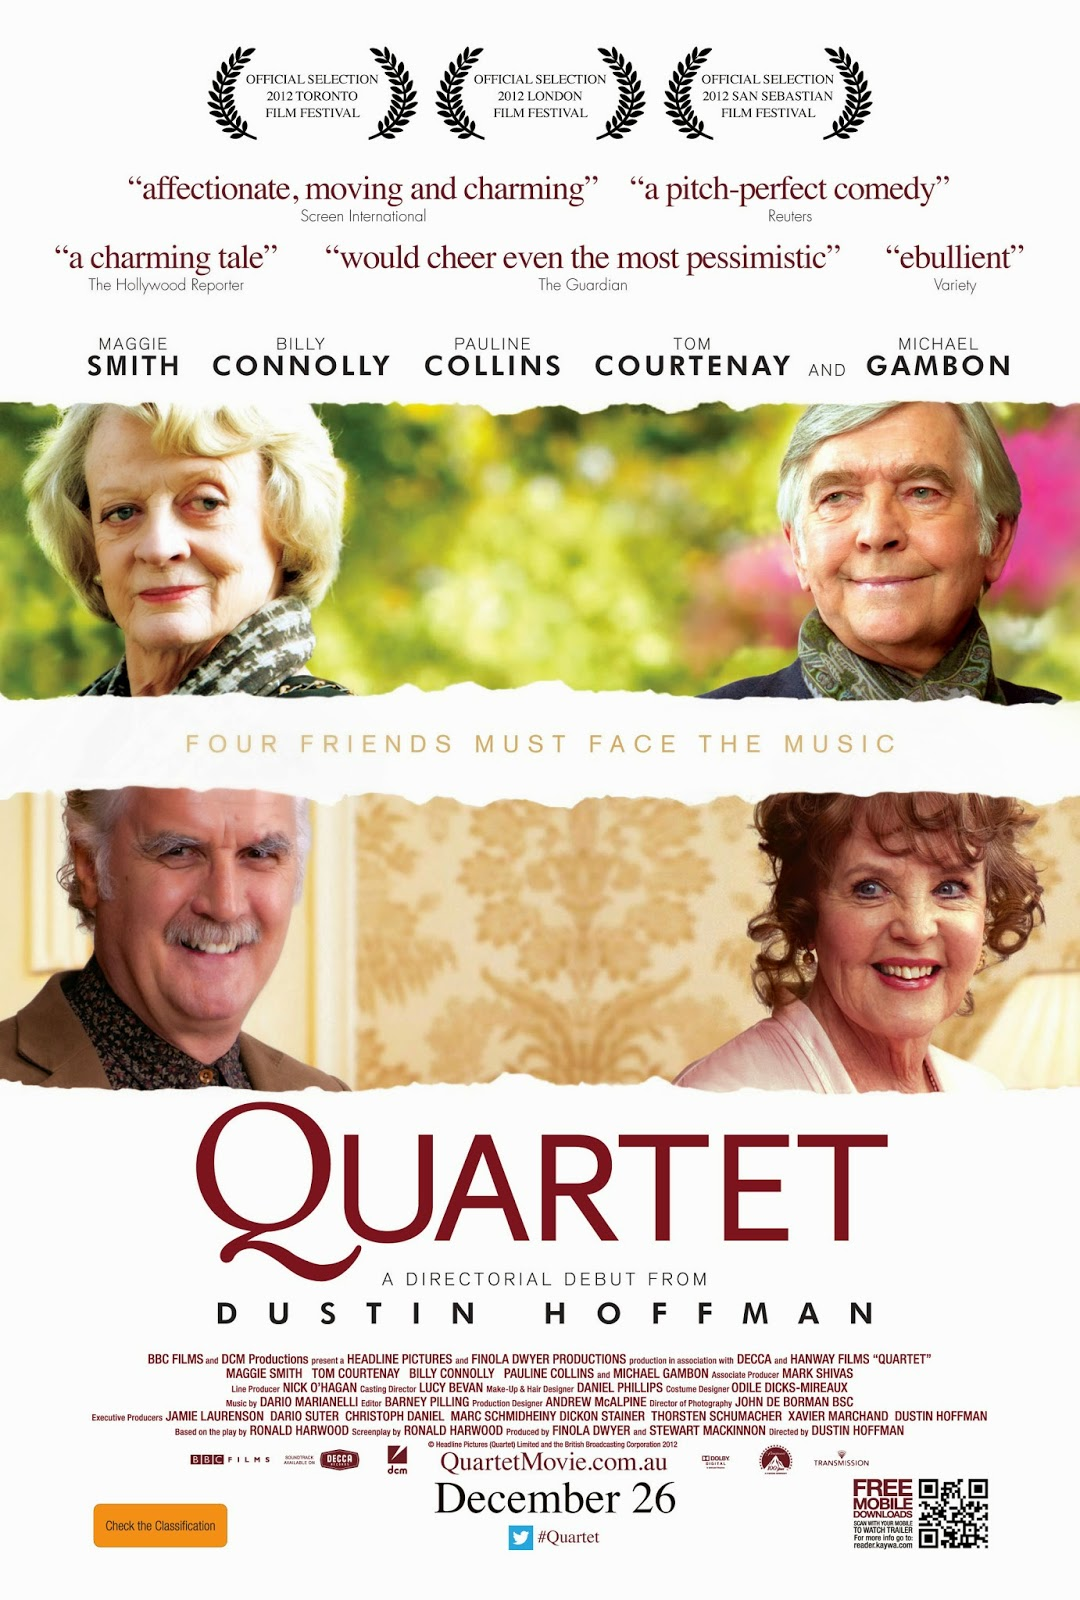 Quartet — 4 out of 5 stars